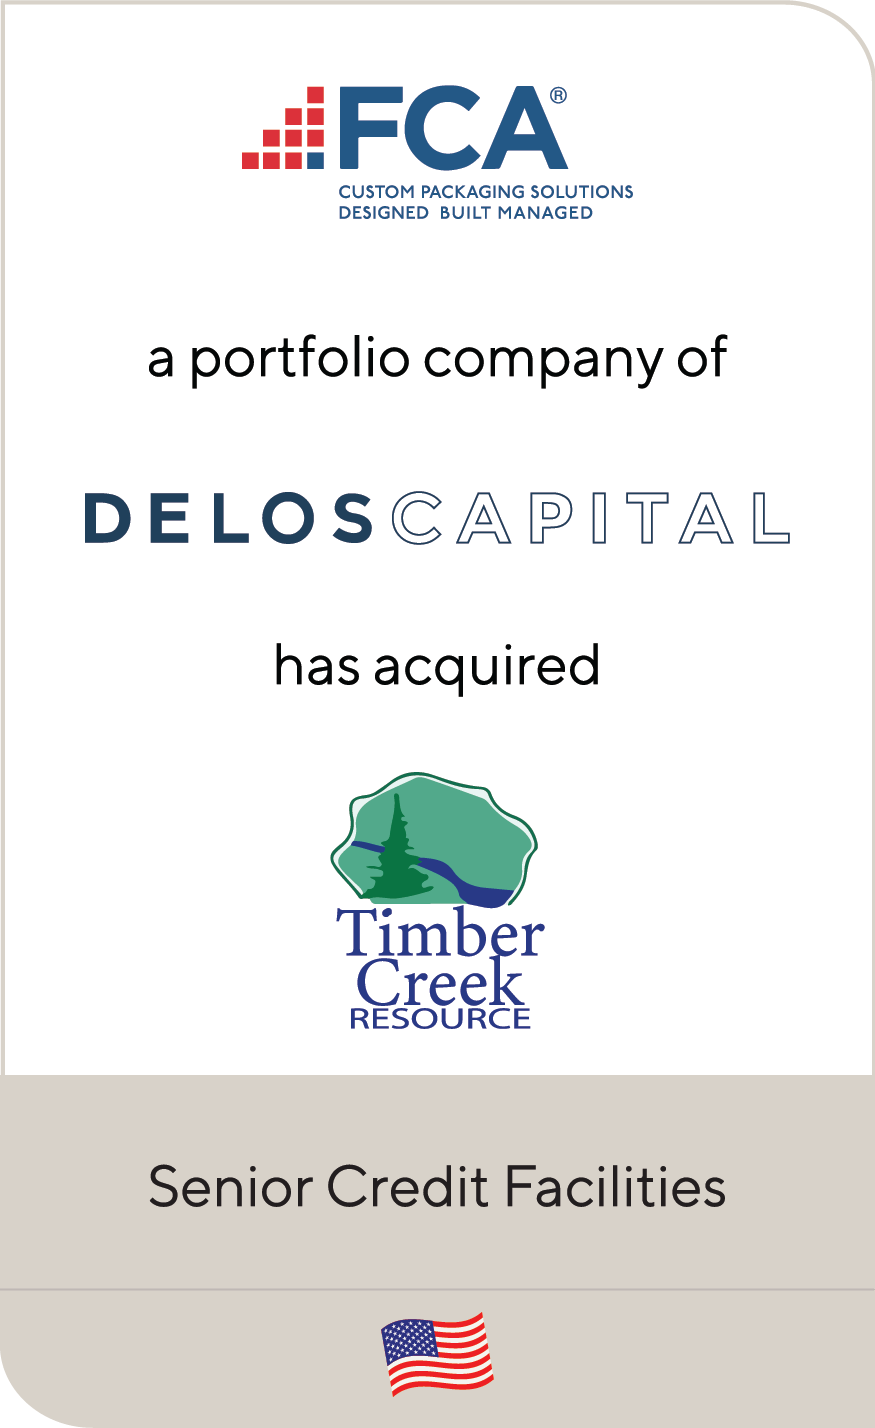 FCA Packaging Delos Capital Timber Creek 2021